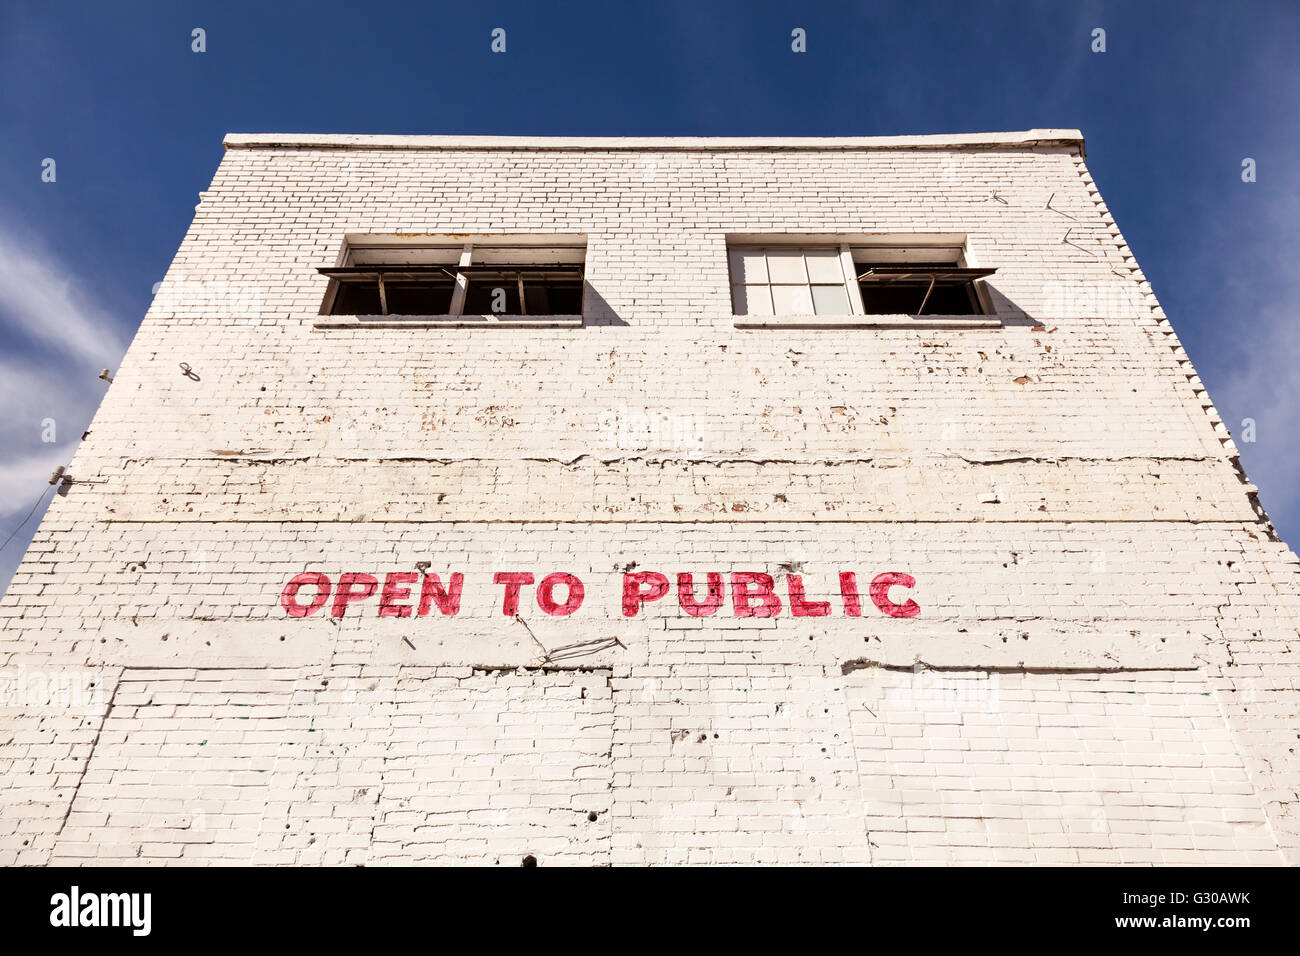 Open to public building - Stock Image